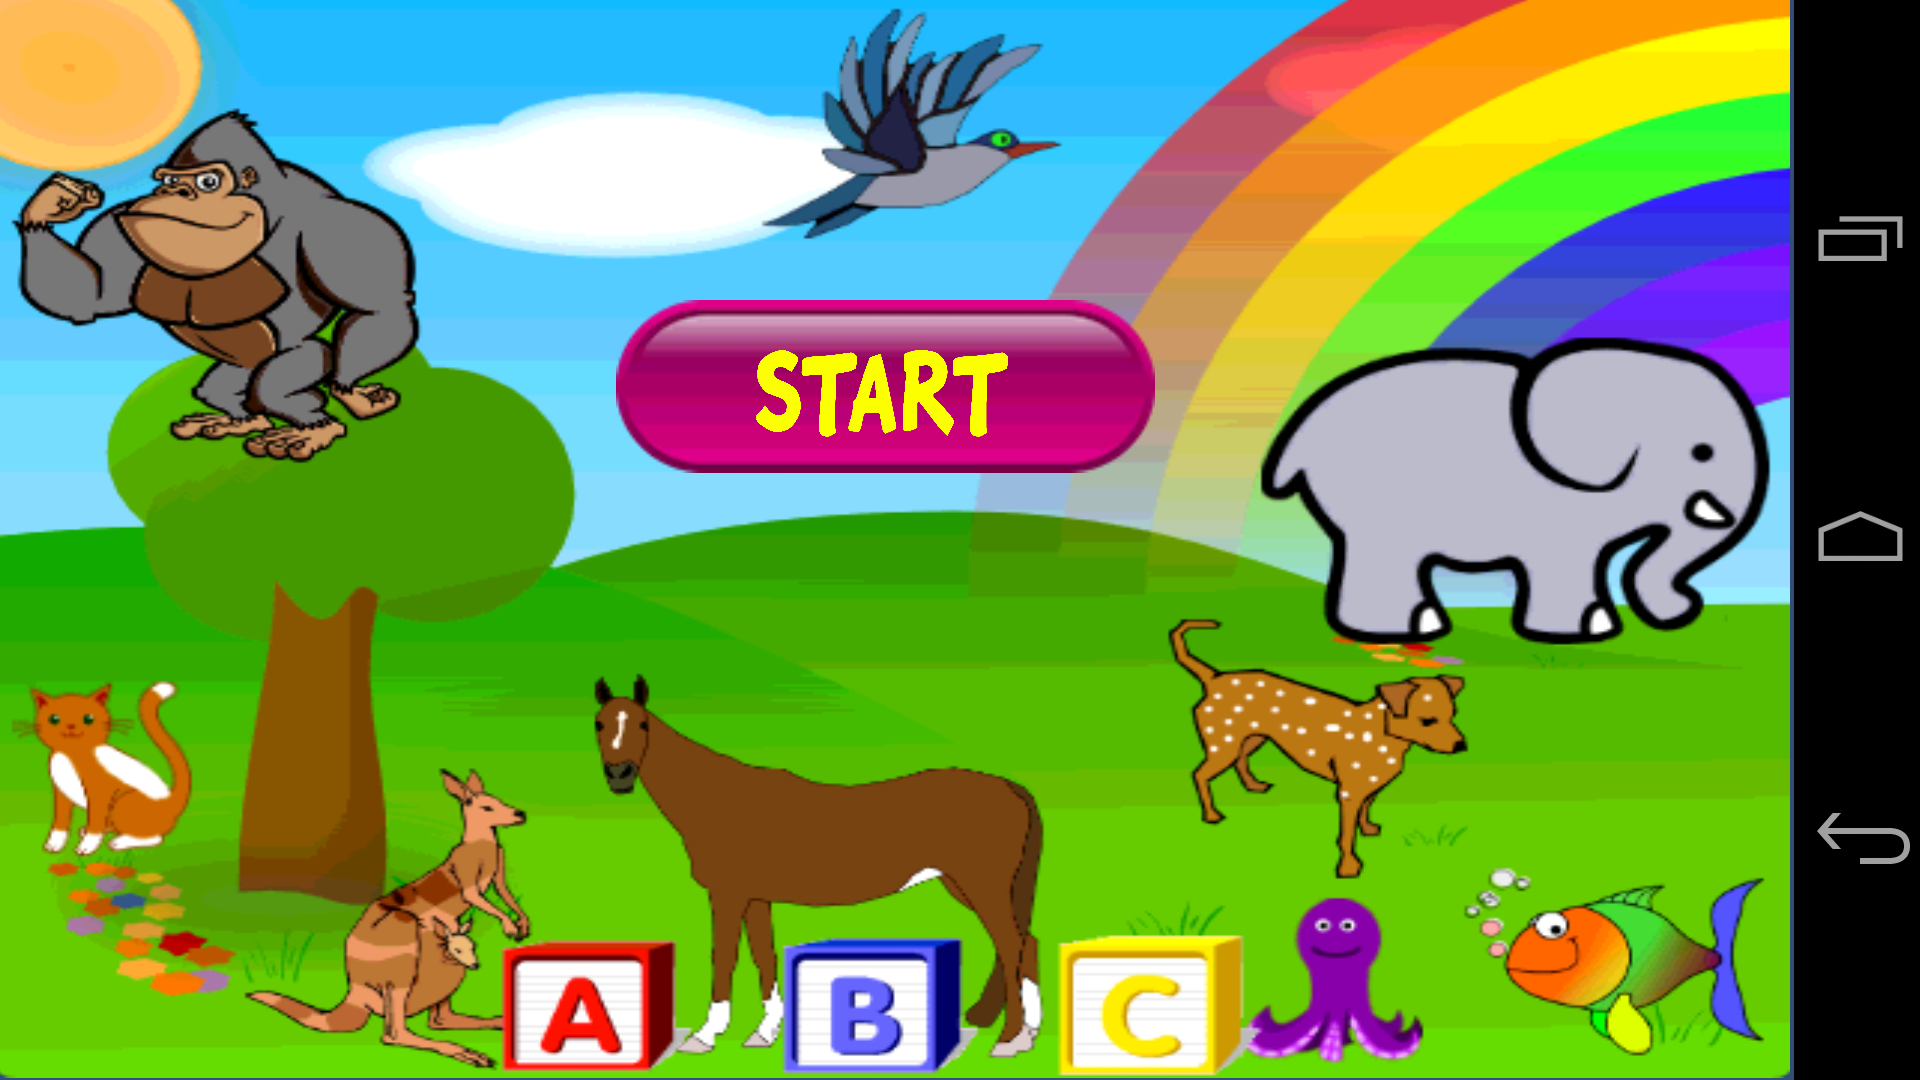 ABC Kids Game 3 4 5 years old Google Play Store revenue